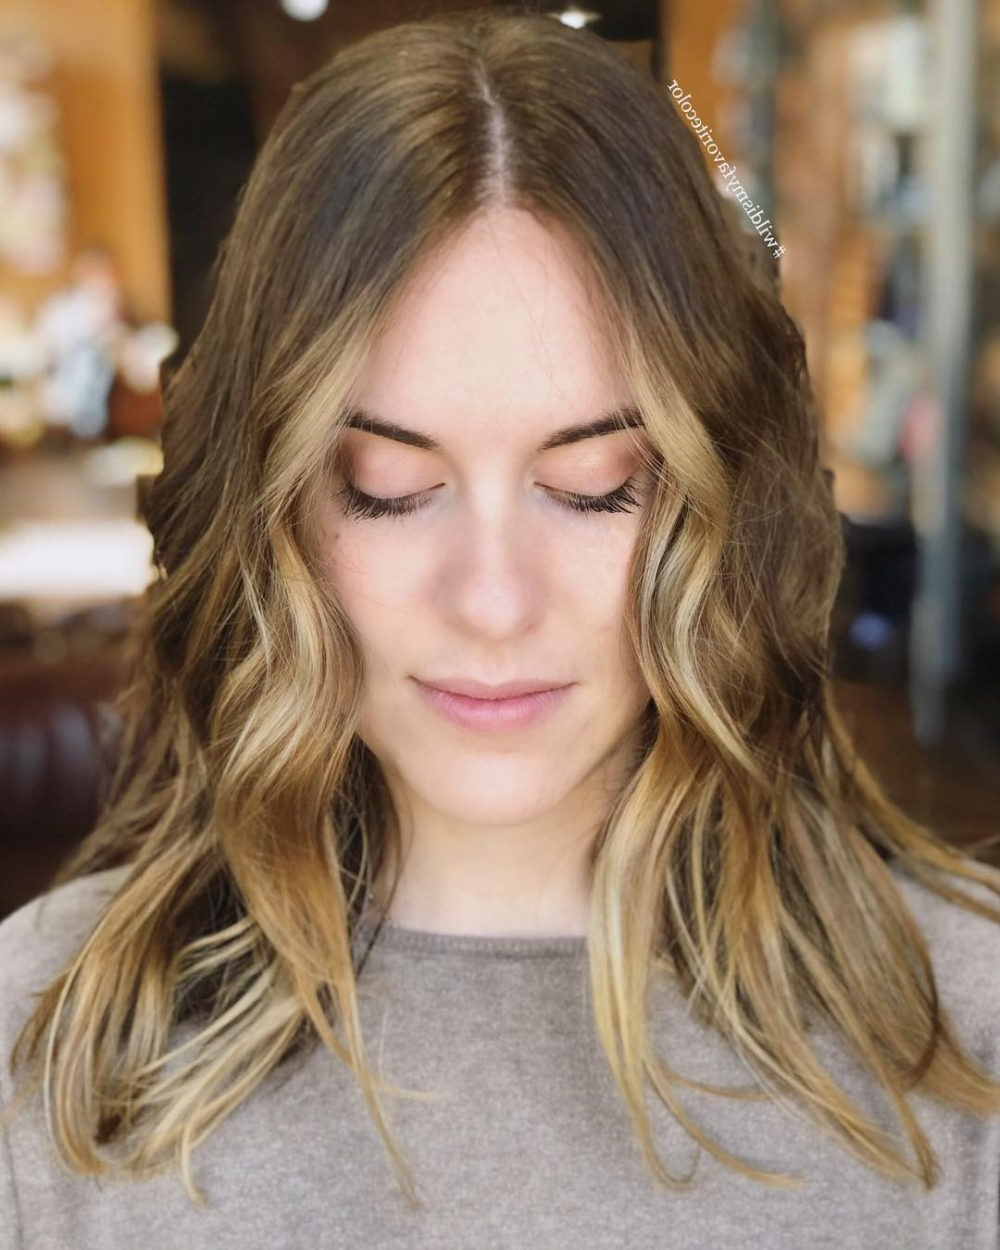 17 Flattering Medium Hairstyles For Round Faces In 2019 Throughout Well Known Medium Haircuts For Round Face (View 2 of 20)